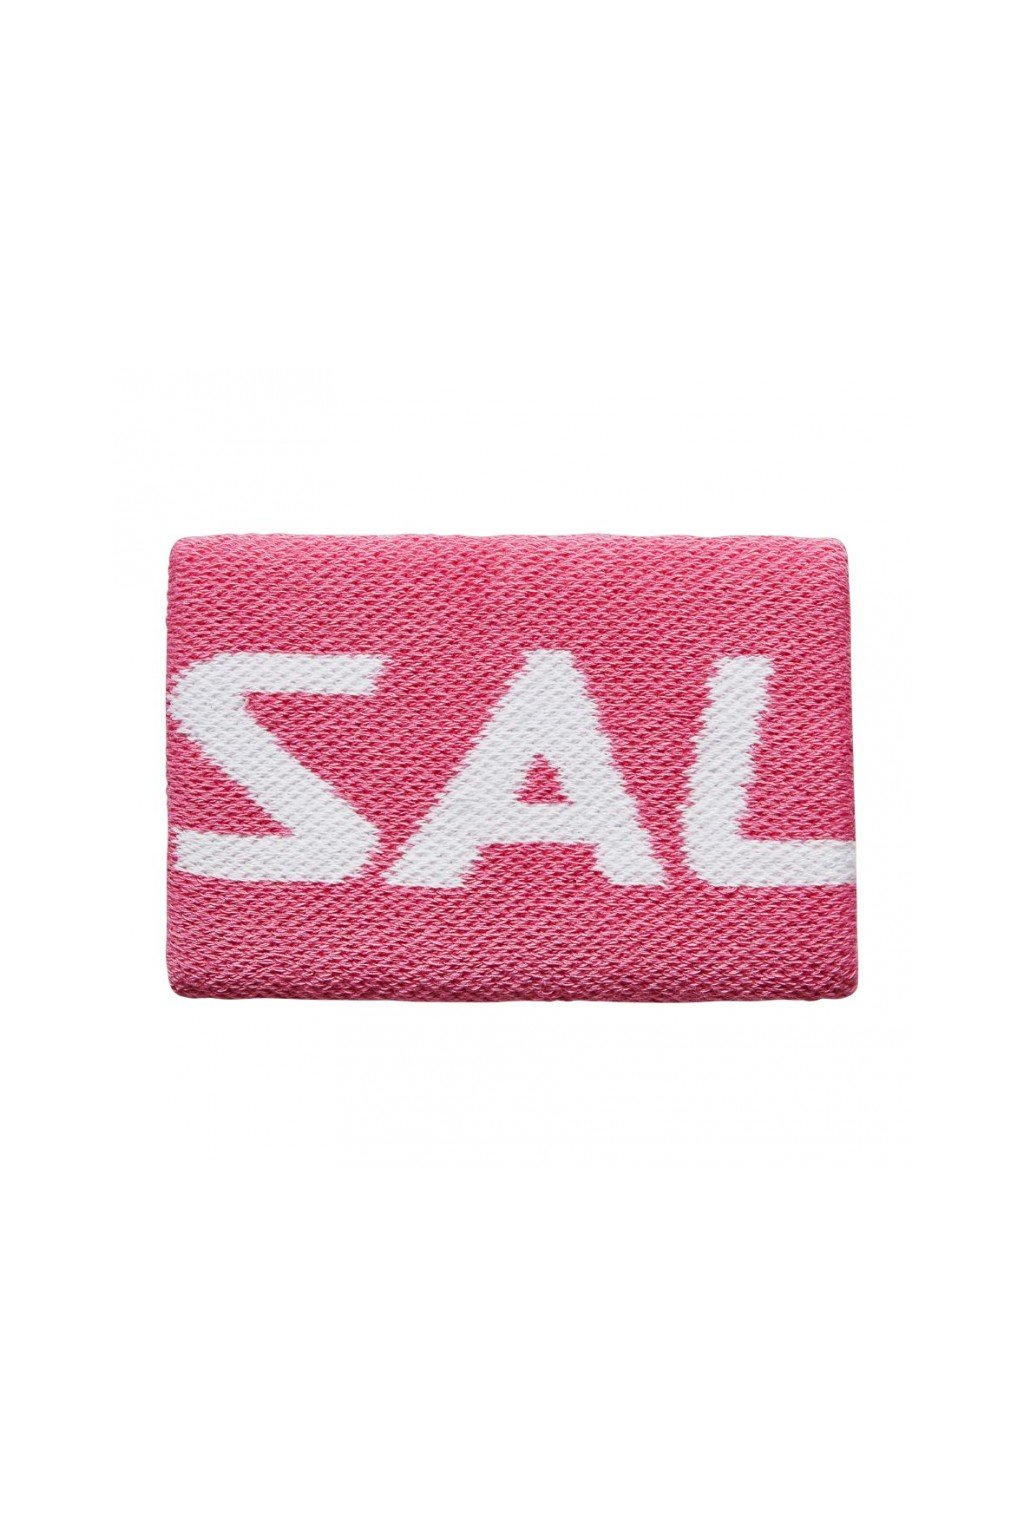 salming wristband mid pink white